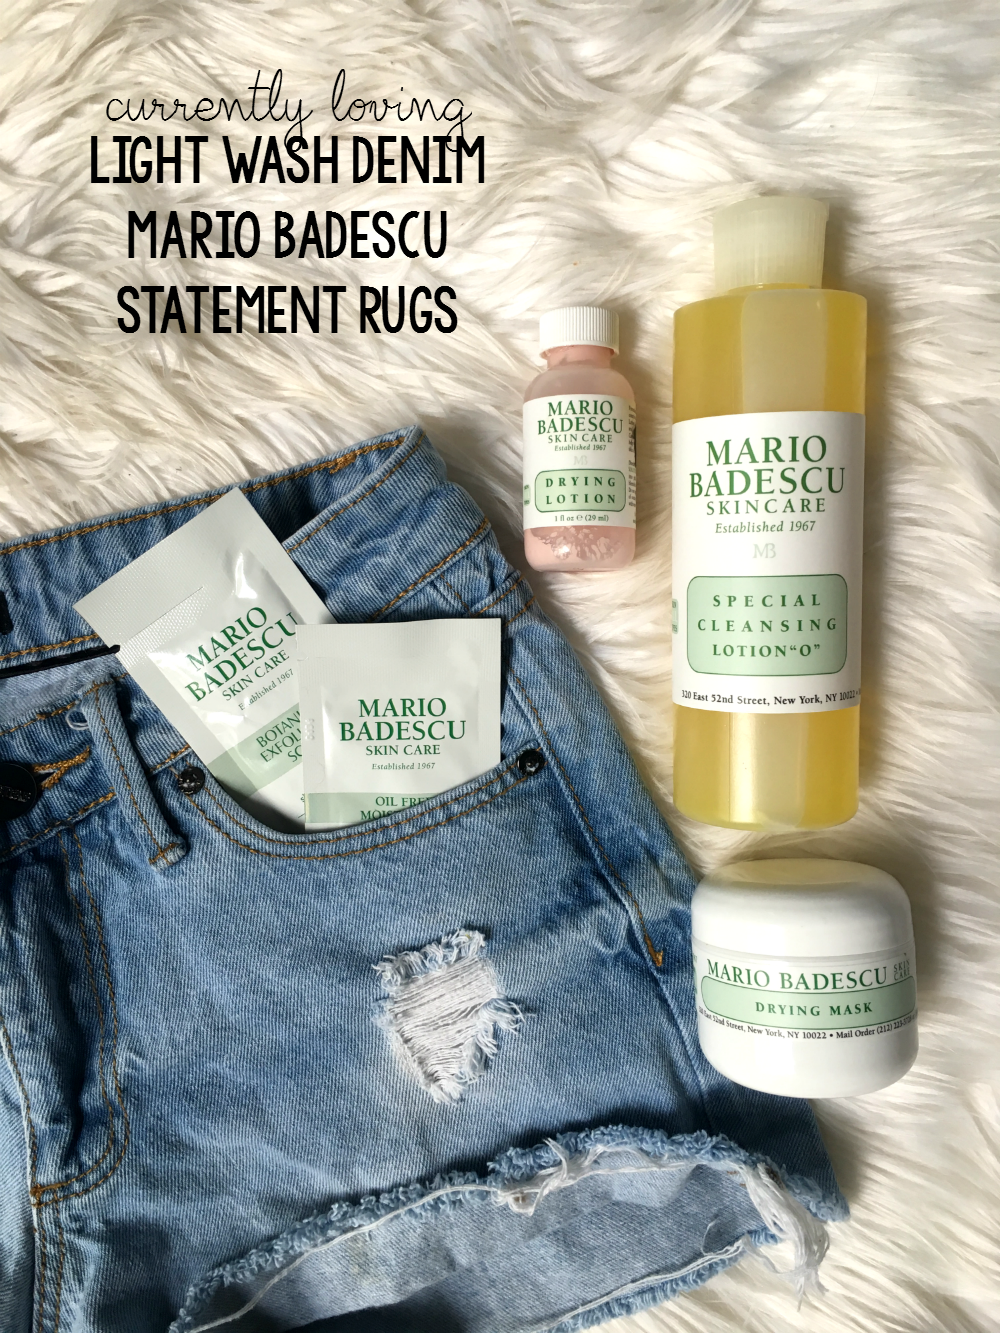 Currently Loving: Light Wash Denim, Mario Badescu, Statement Rugs